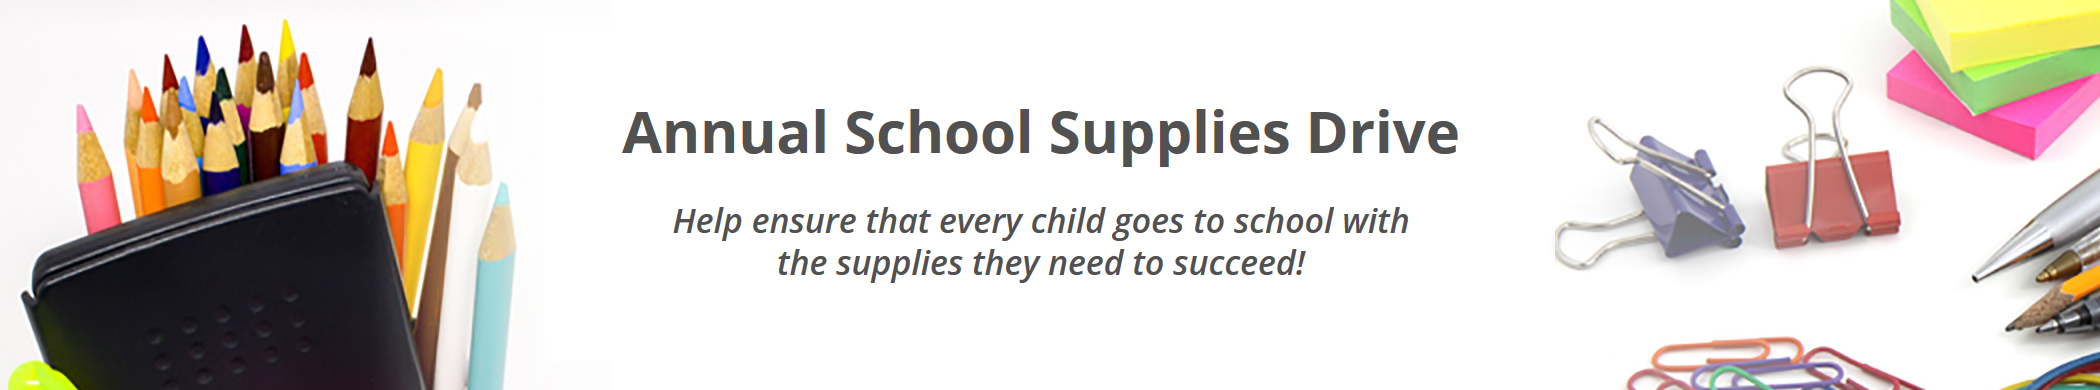 school-supply-banner-background-with-text